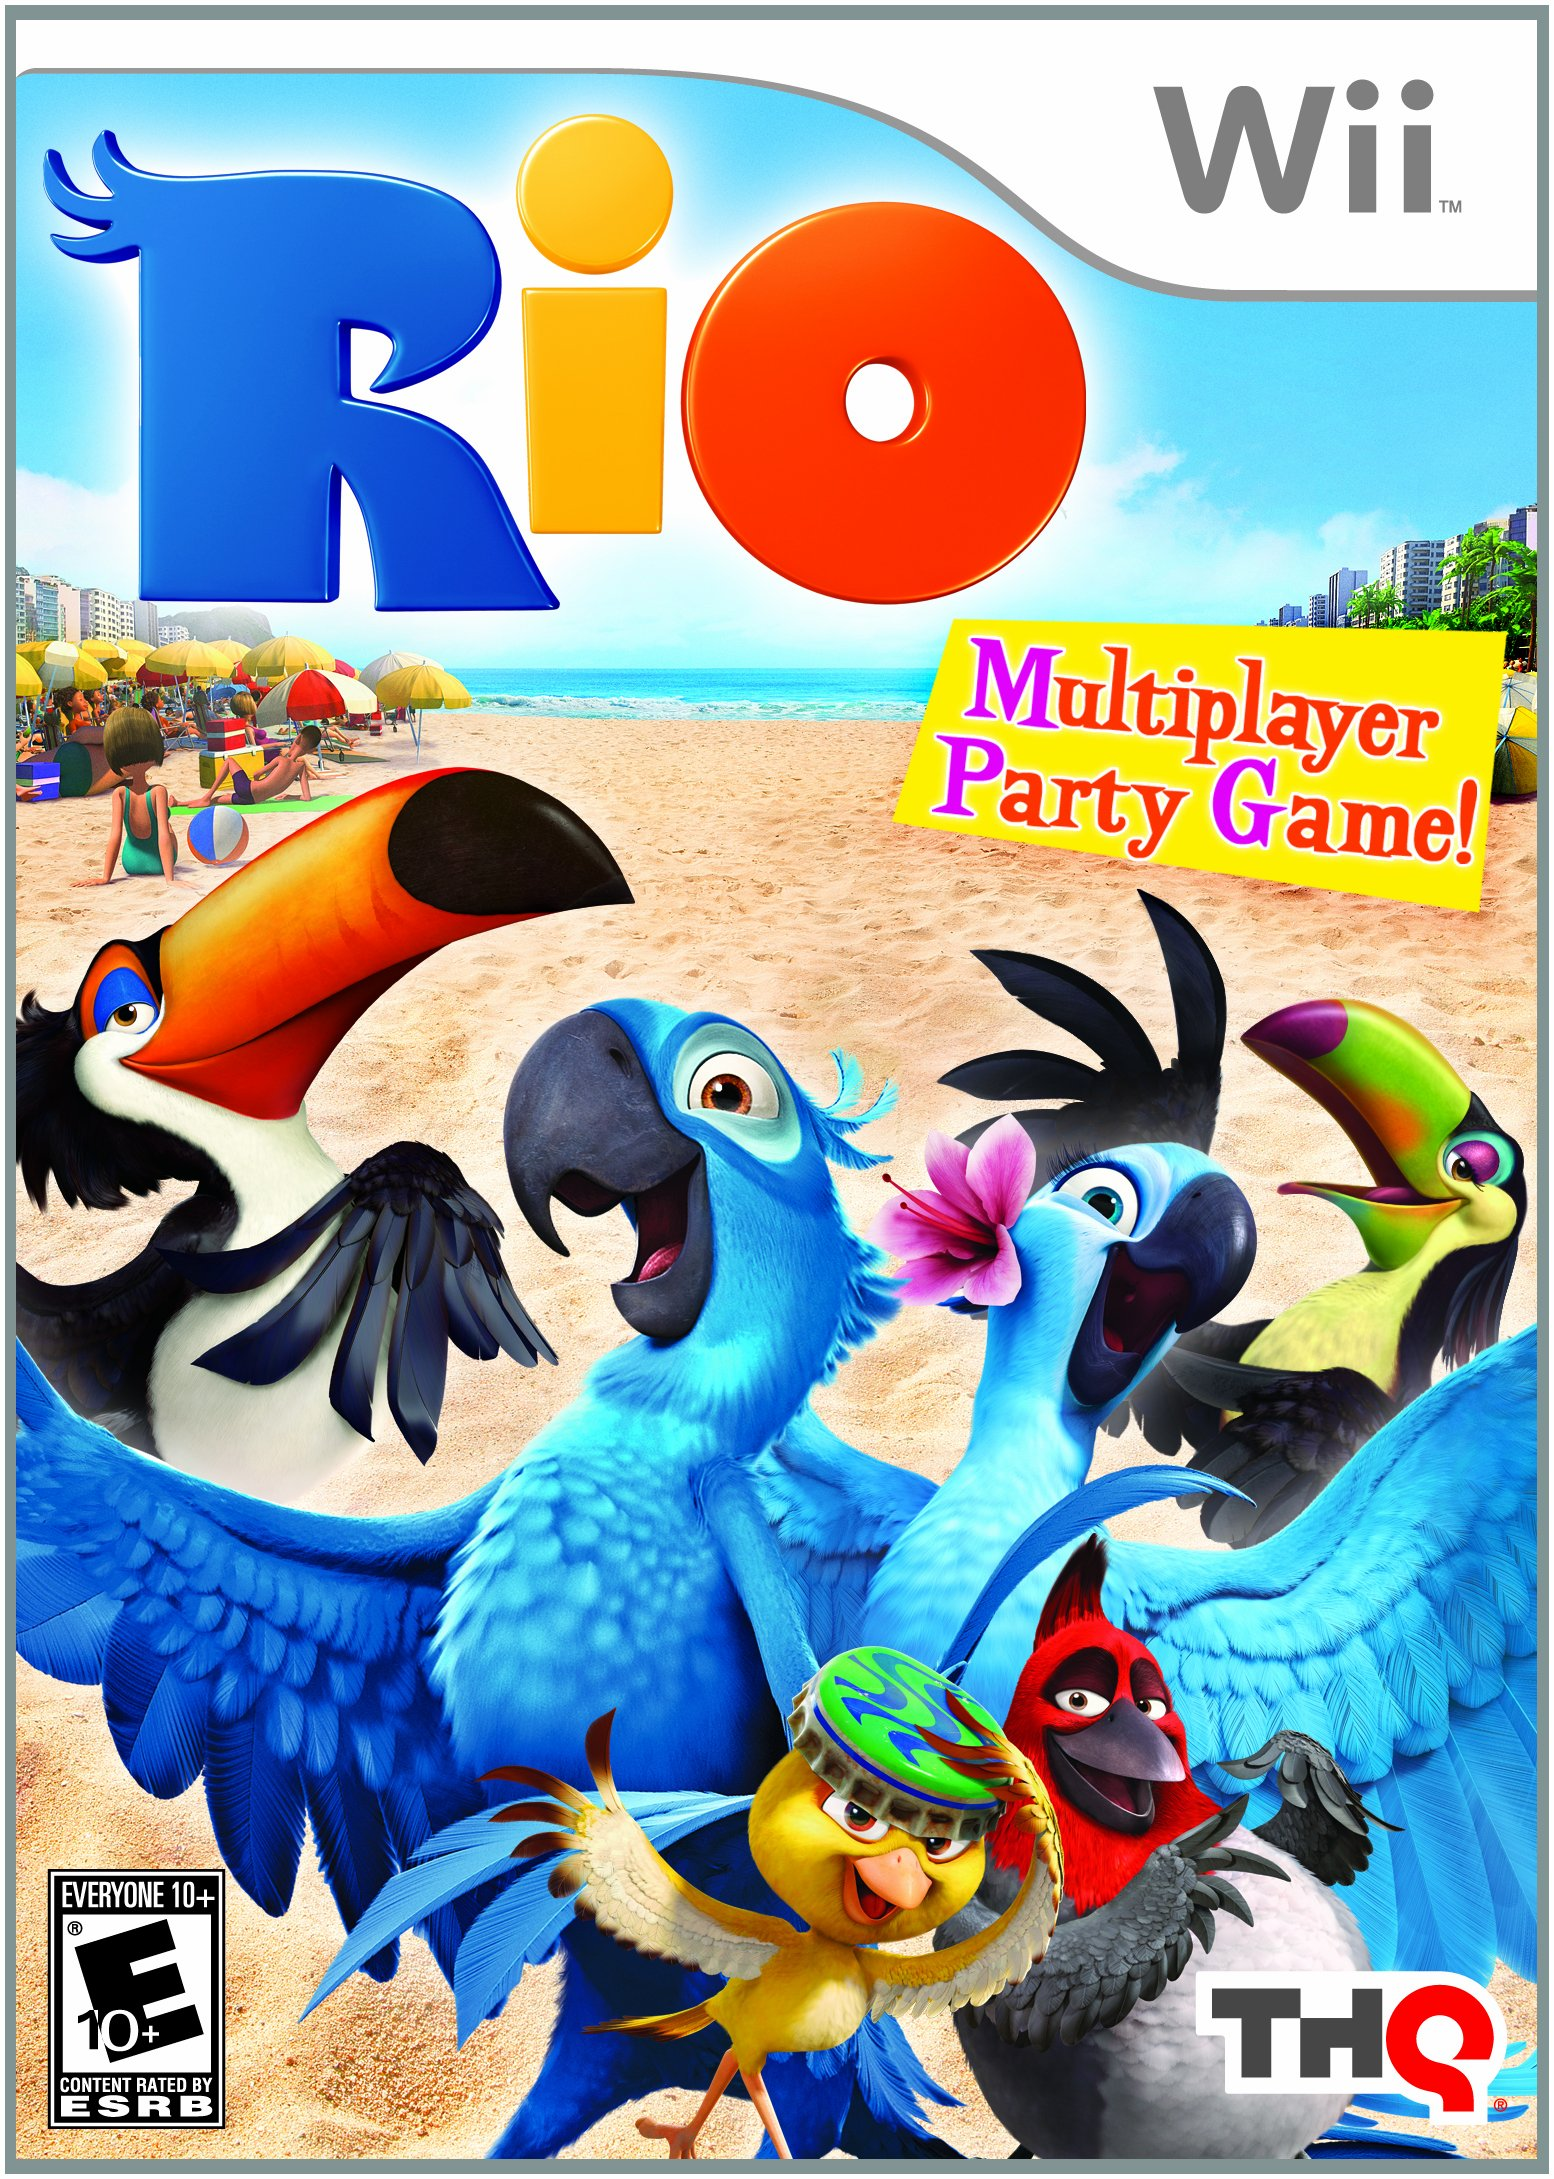 Rio Release Date Wii DS Xbox 360 PS3